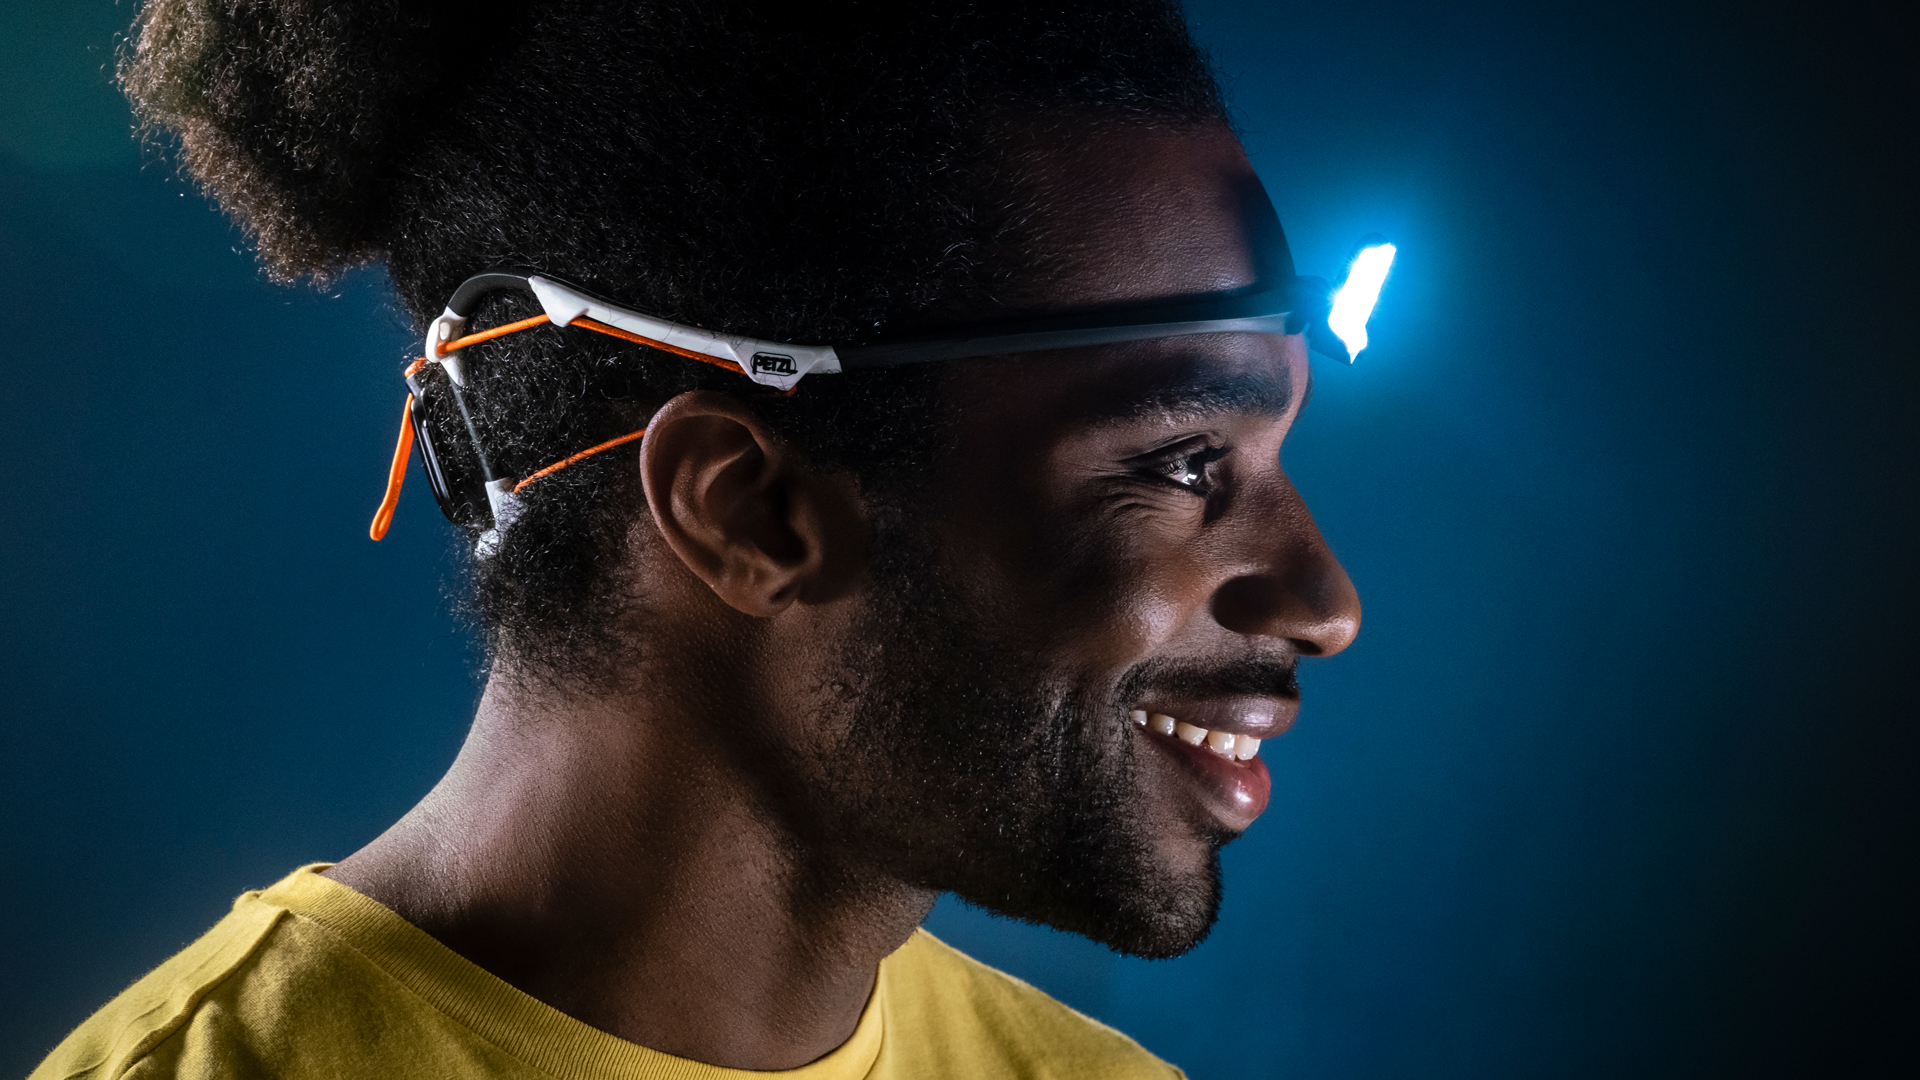 Petzl reinvents the headlamp – LIKE NOTHING ELSE